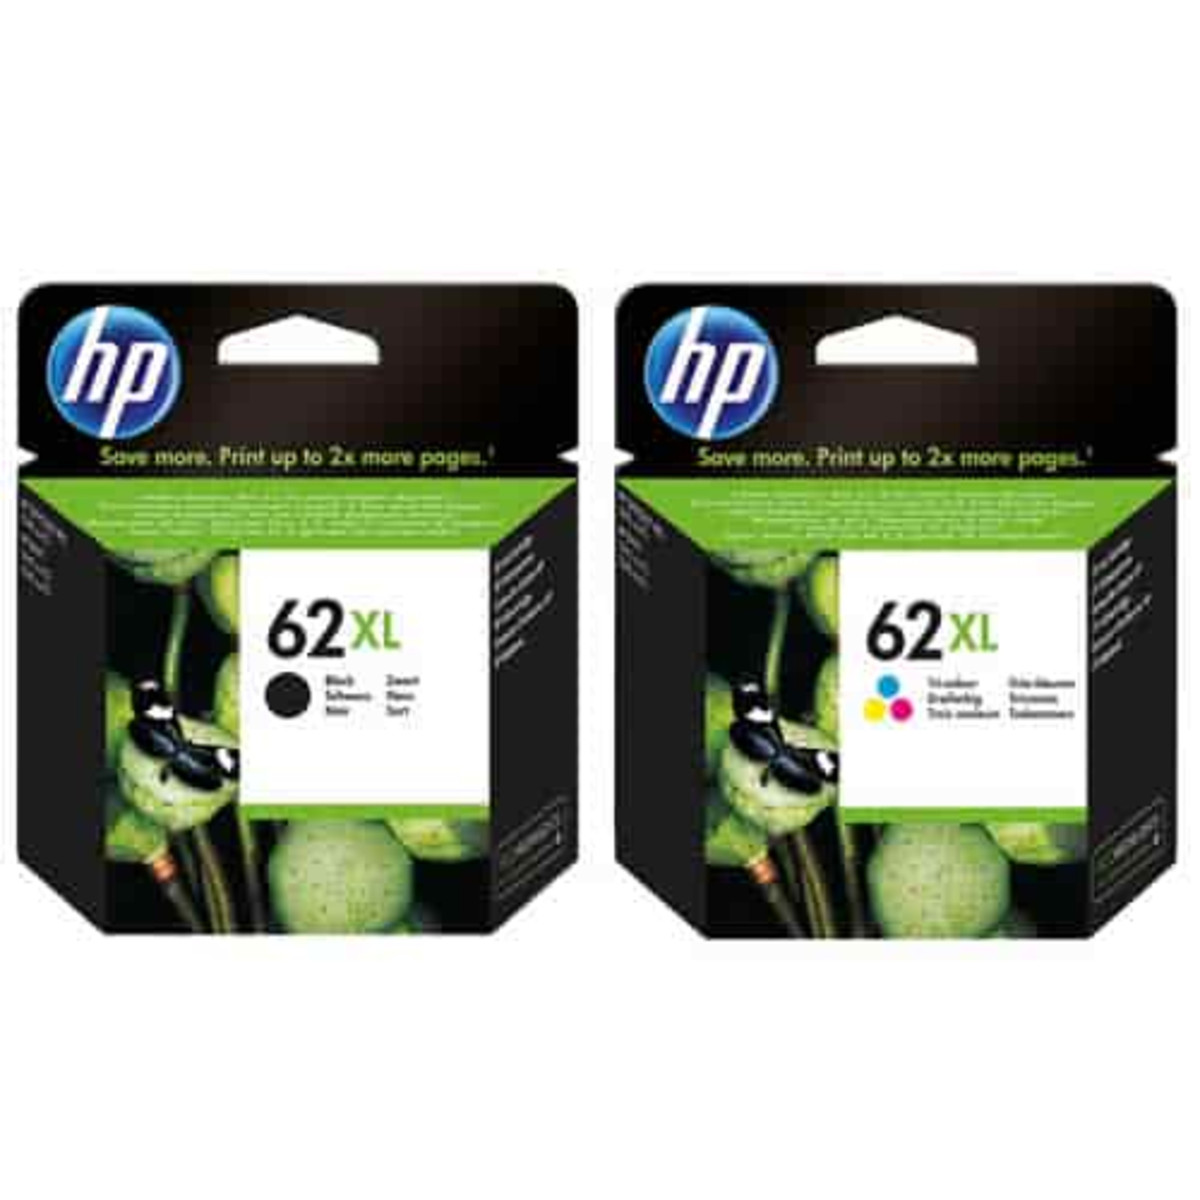 HP 62XL Black and Colour Ink Cartridge Combo Pack